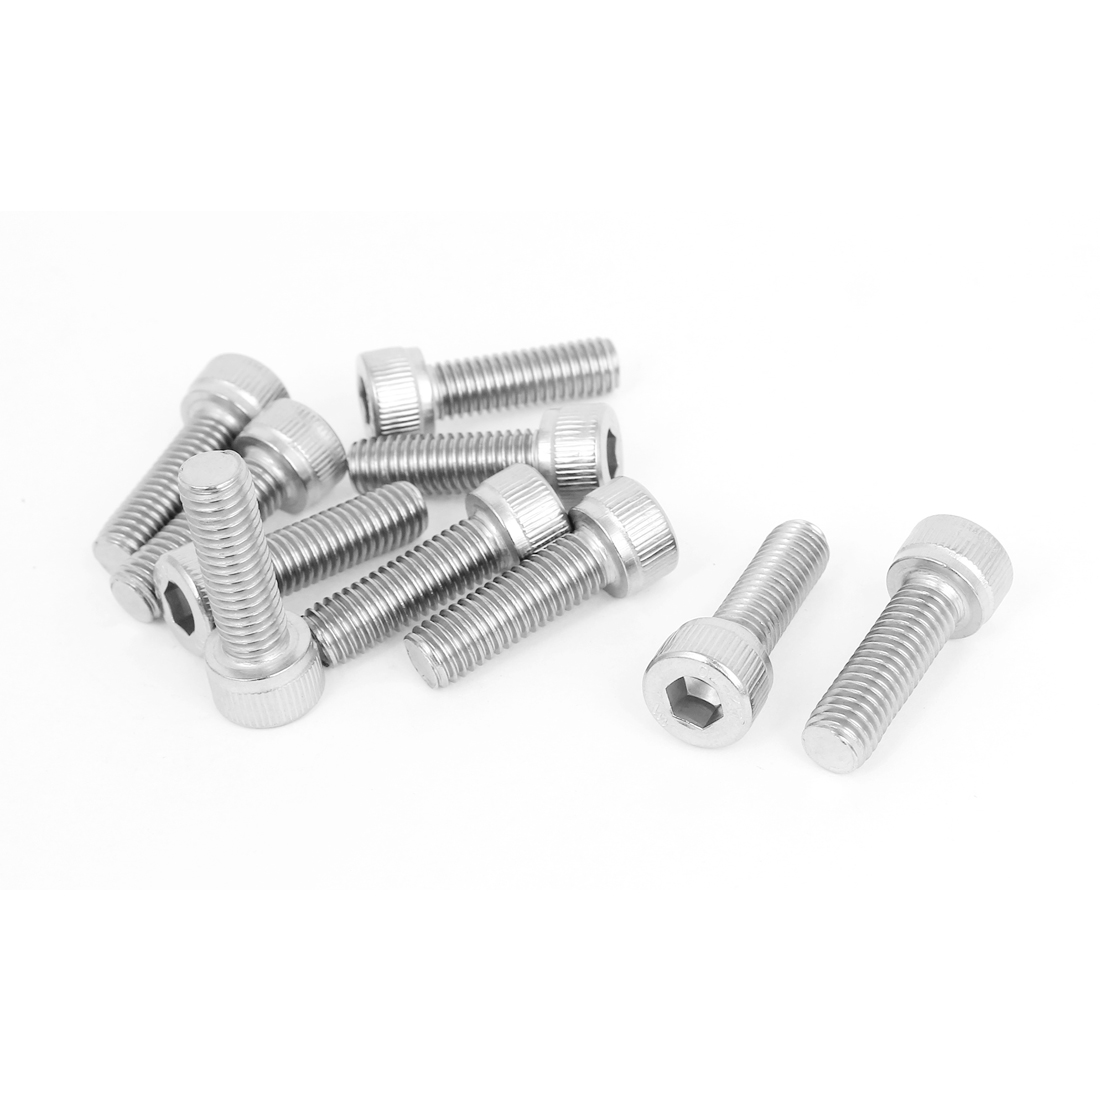 M8 x 25mm Threaded DIN912 Stainless Steel Hex Socket Head Cap Screws 10pcs